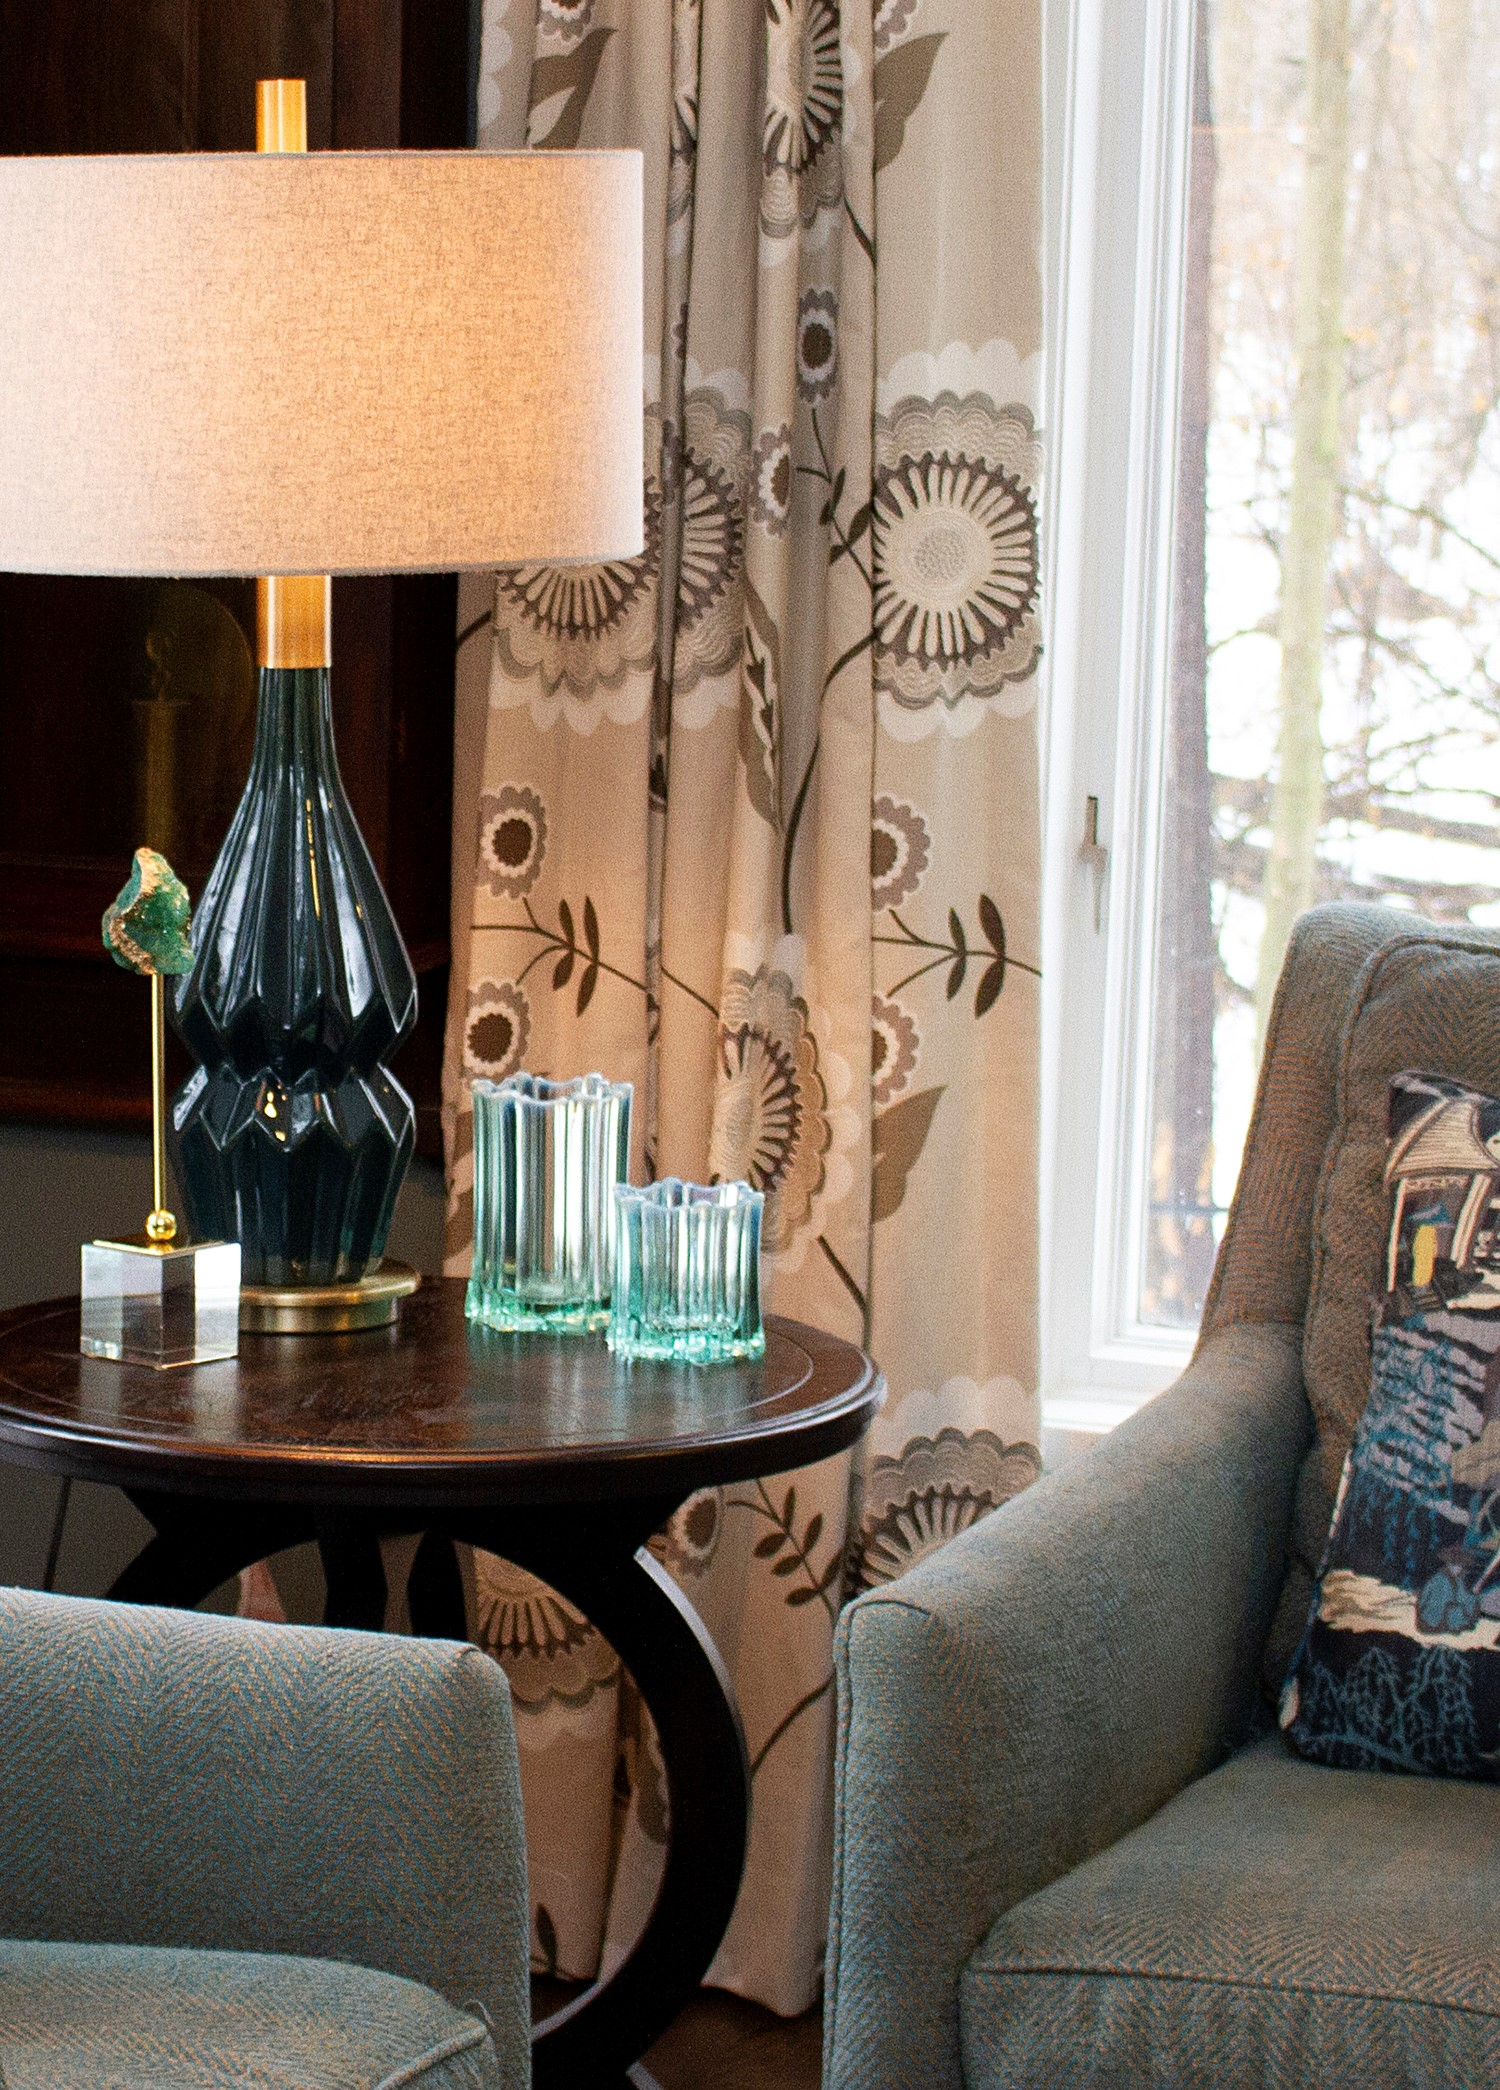 Manhattan Textiles Chairs, End Table, and Lamp by Manhattan Textiles - Interior Designer in Milwaukee, WI